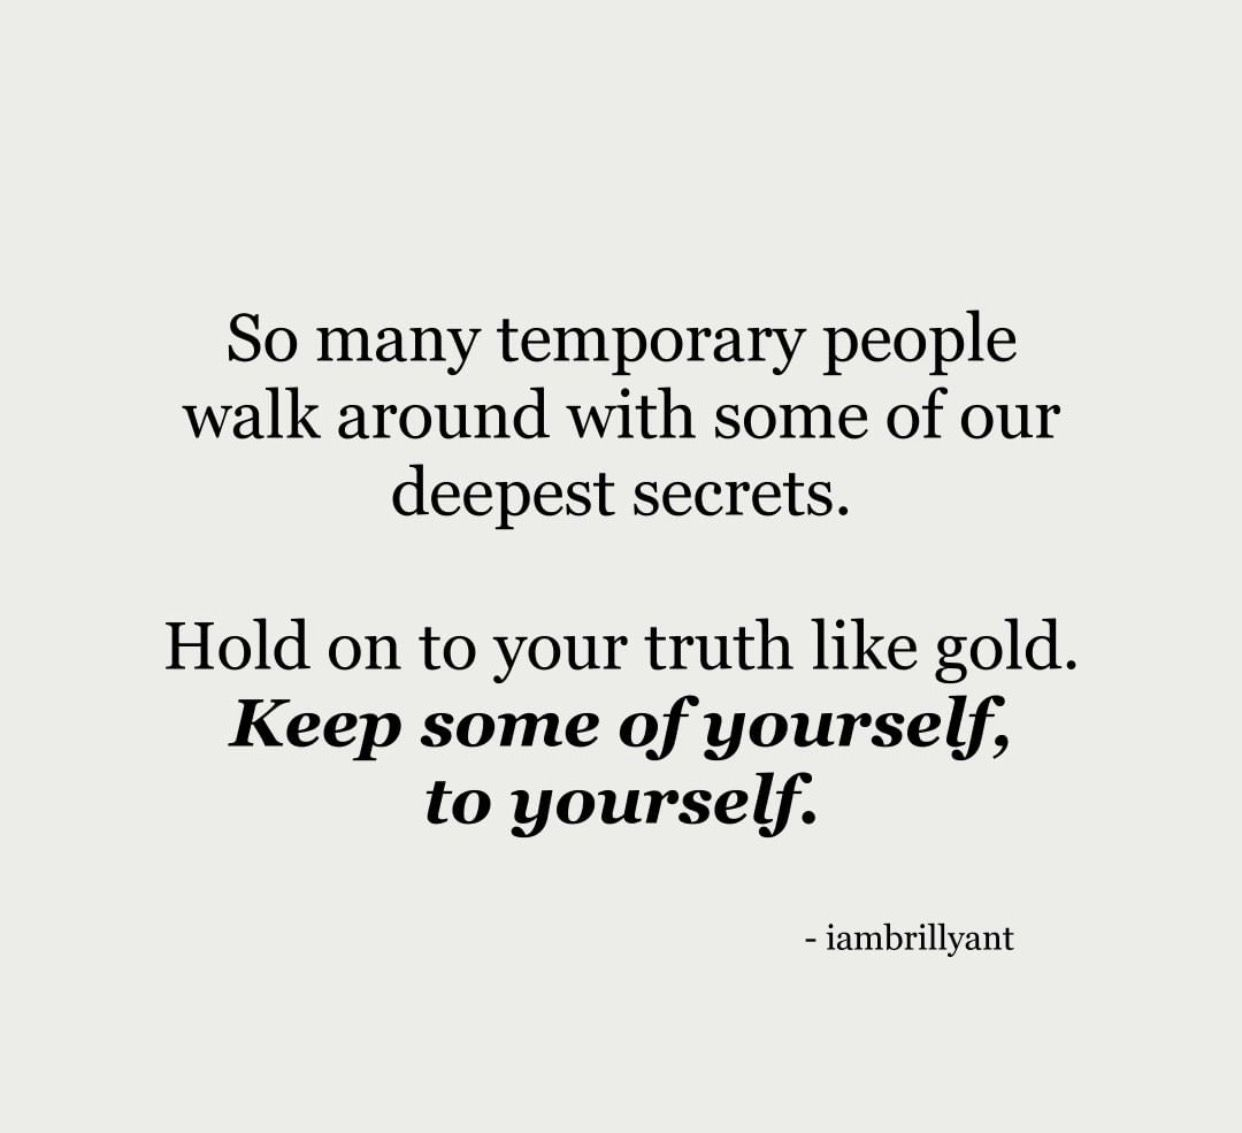 Deep Quotes About Life Piece Of Advice  Piece Of Advice Quotes  Pinterest  Advice